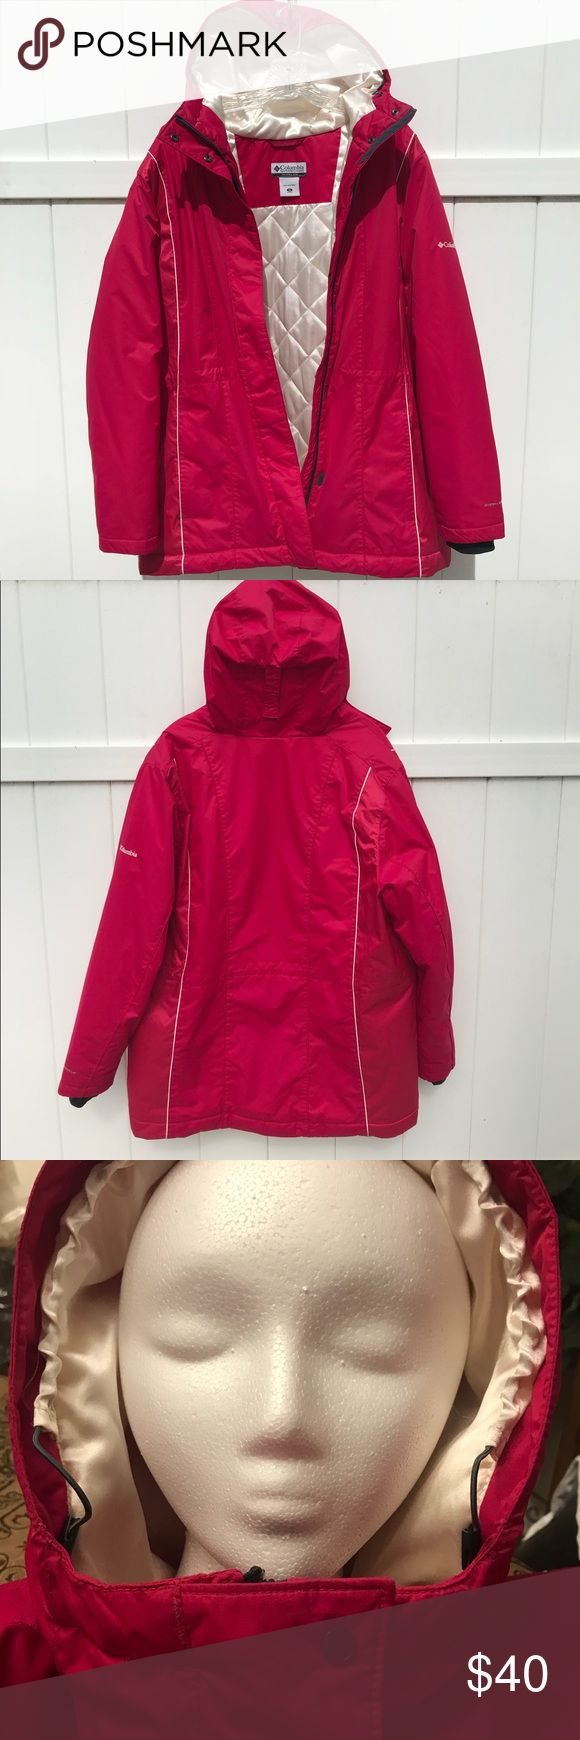 Ladies Columbia Omni-Shield Quilted Down Jacket ~EXCELLENT preowned condition (area of minor piling inside of coat )~ Women's 1X - Plus Size Fuchsia in color  Combine Omni-Shield advanced repellency,&Omni-Heat thermal reflective make this jacket super toasty to keep you warm in cold weather; feminine design lines and buttery soft sateen fabric mean it's also perfect for everyday wear   Omni-Heat thermal reflective Wind proof Highly water resistant  Drawcord adjustable hem & hood  Waterproof…